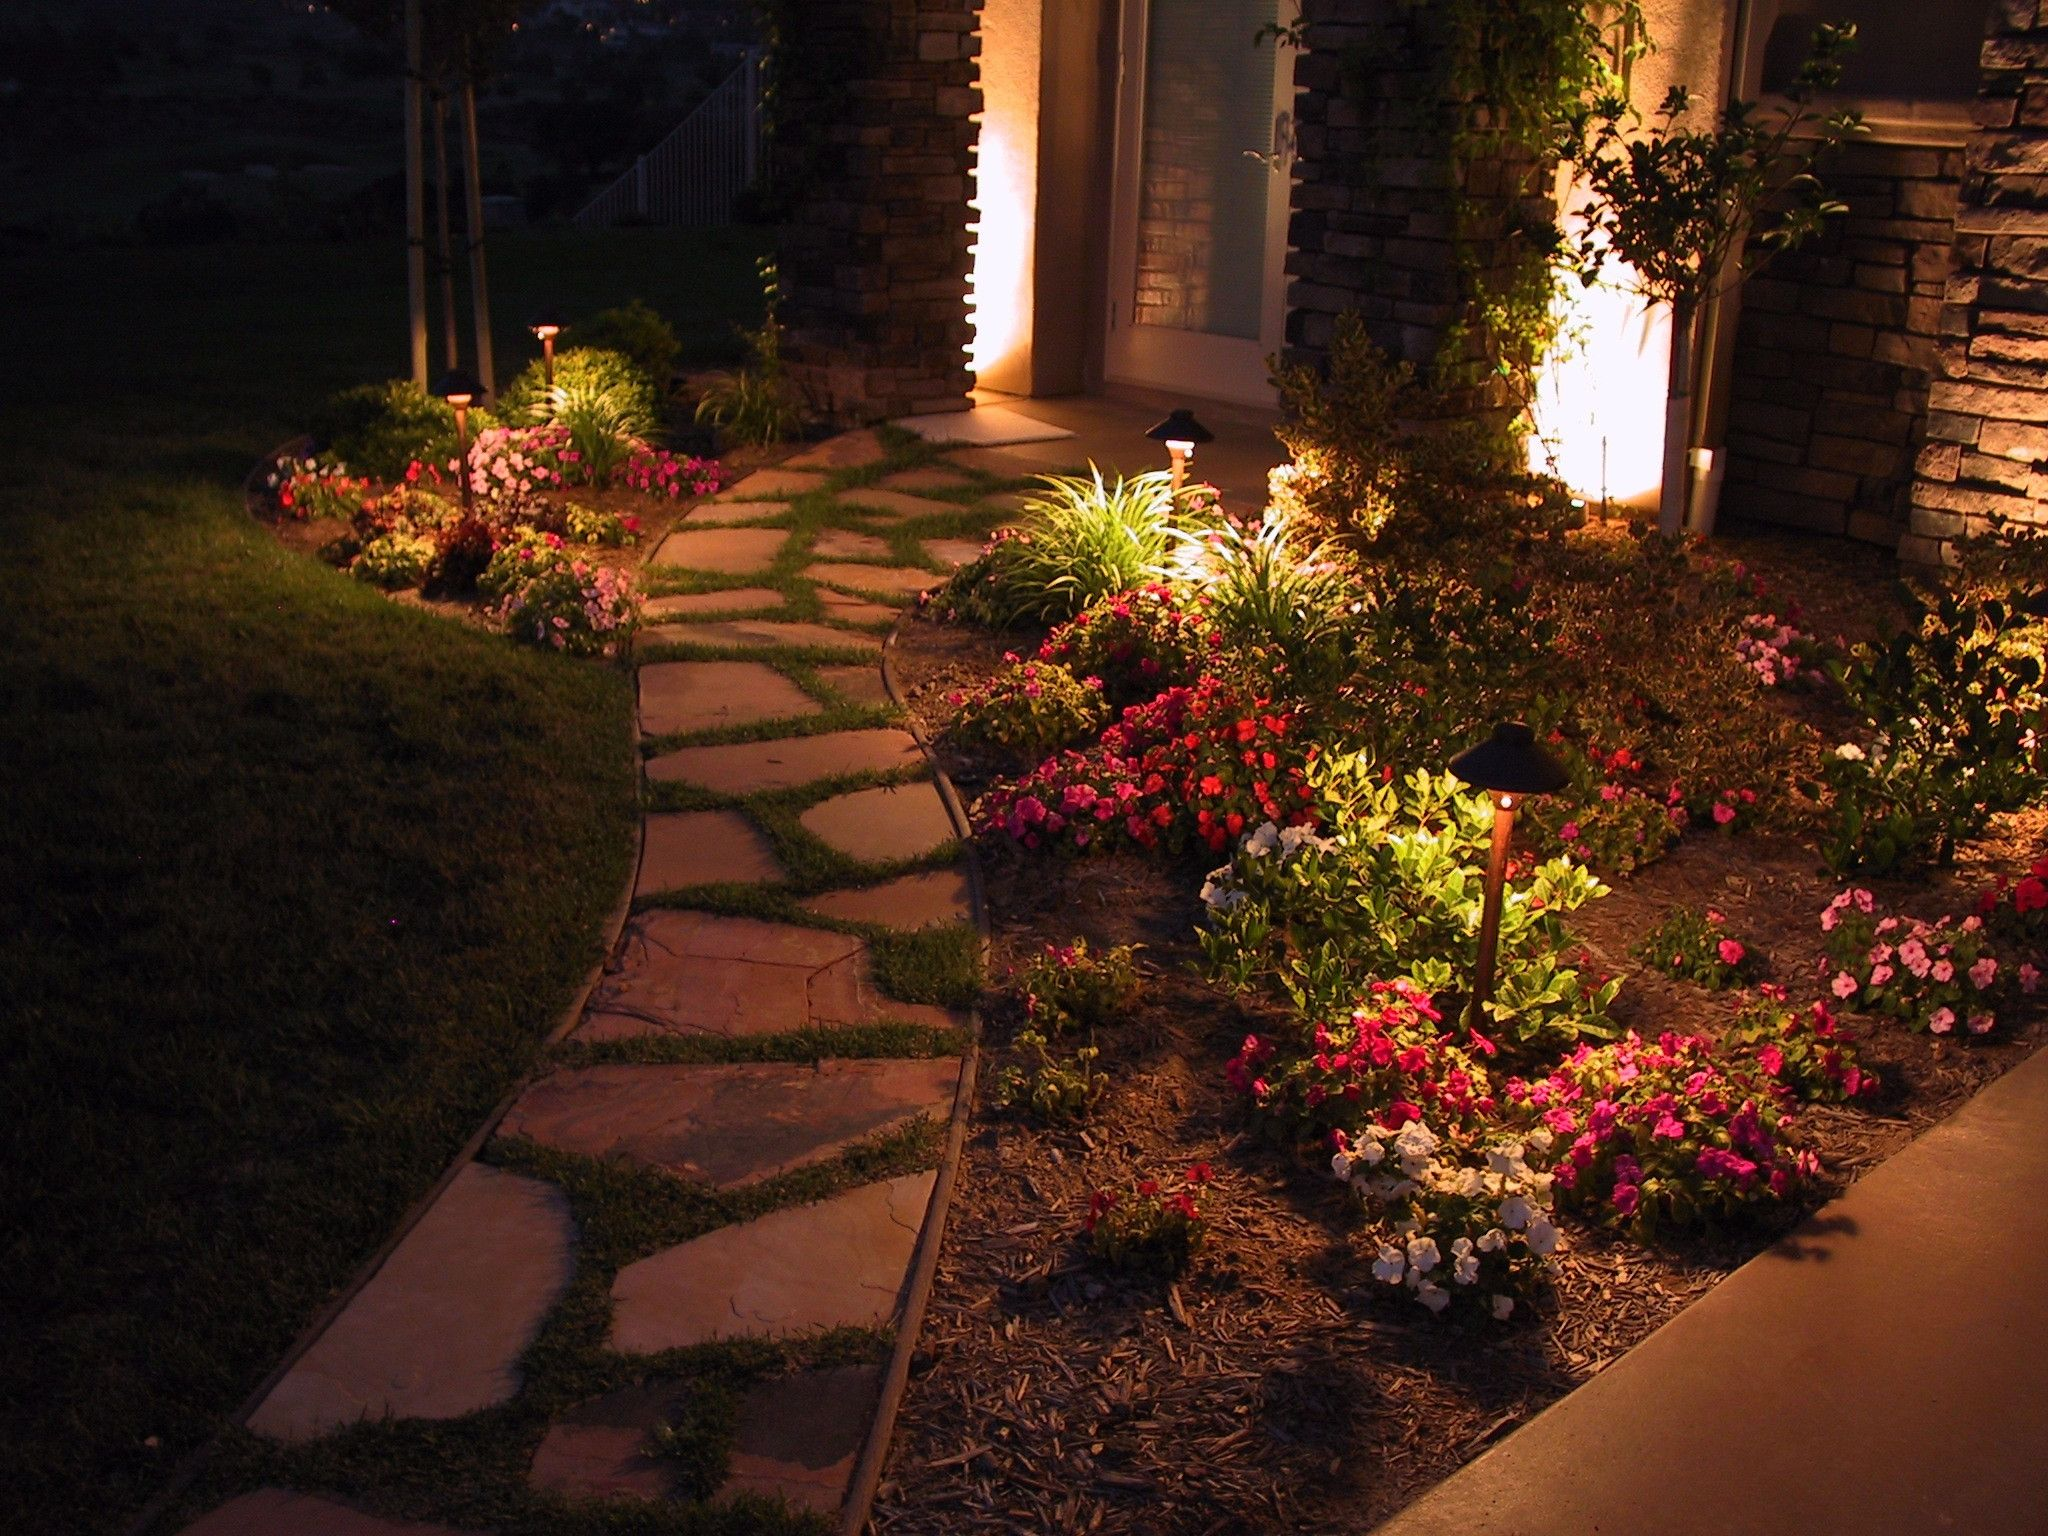 Outdoor Lighting Ideas 5 Pathway Lighting Tips Ideas Walkway Lights Guide Landscape Lighting Landscape Design Outdoor Landscaping